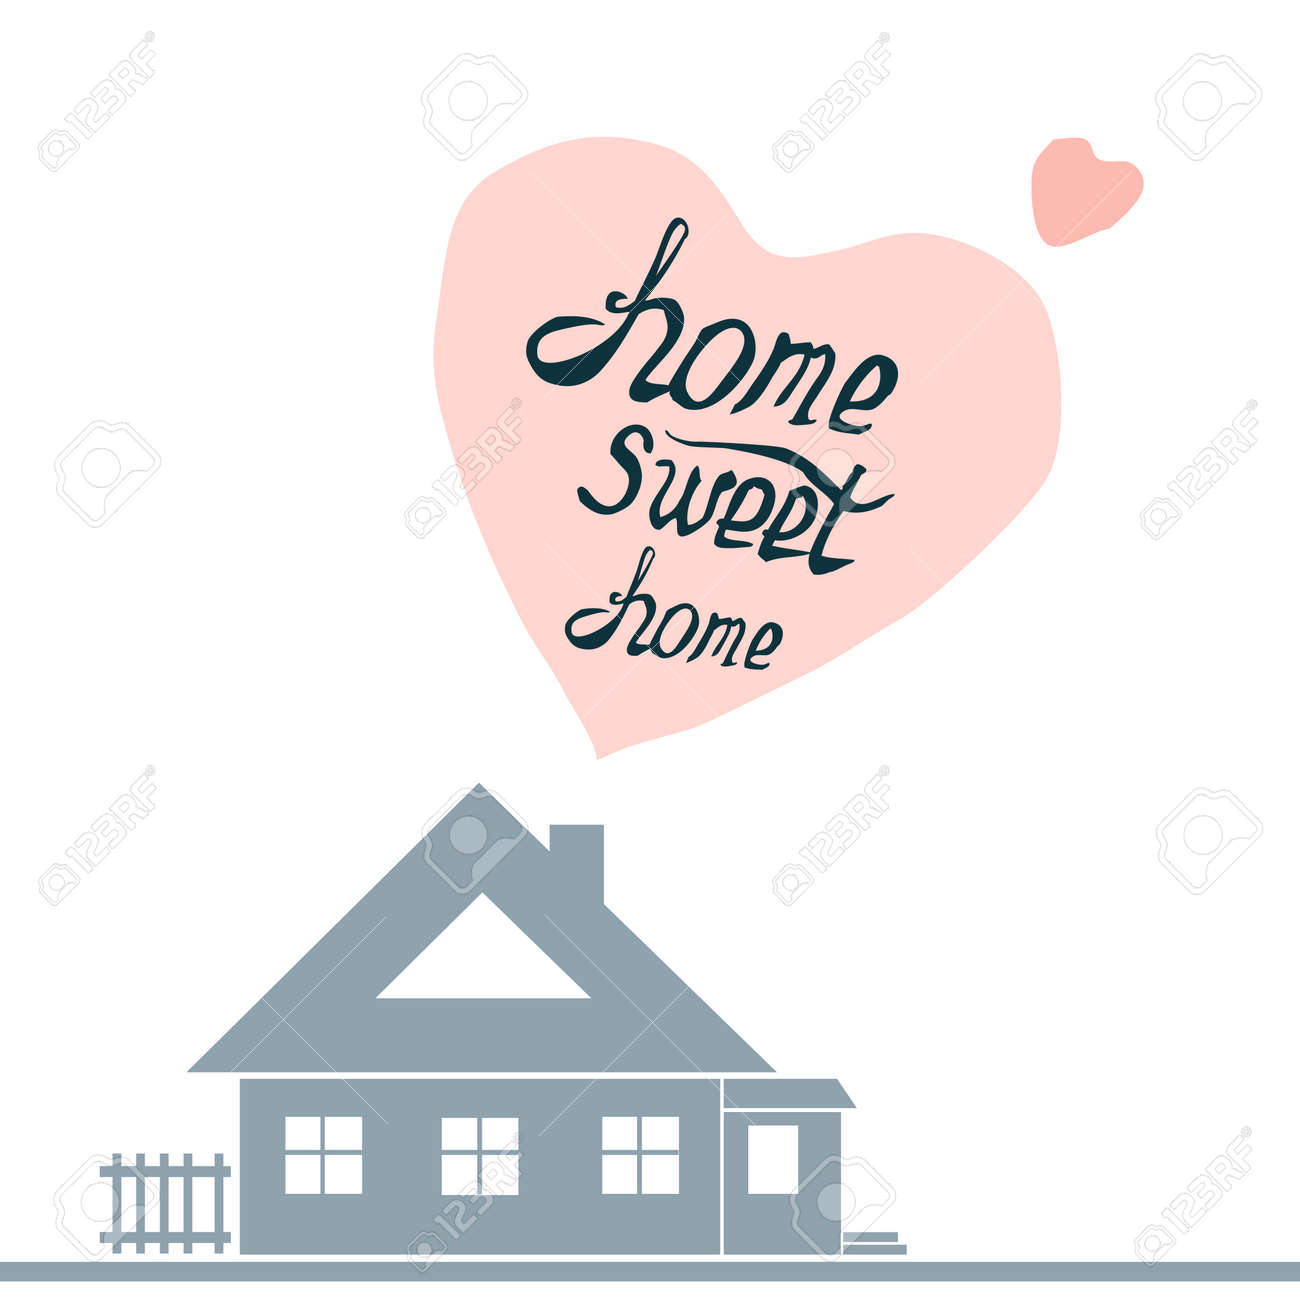 Home Sweet Home Vintage vintage cute illustration with hand-drawn lettering.home sweet